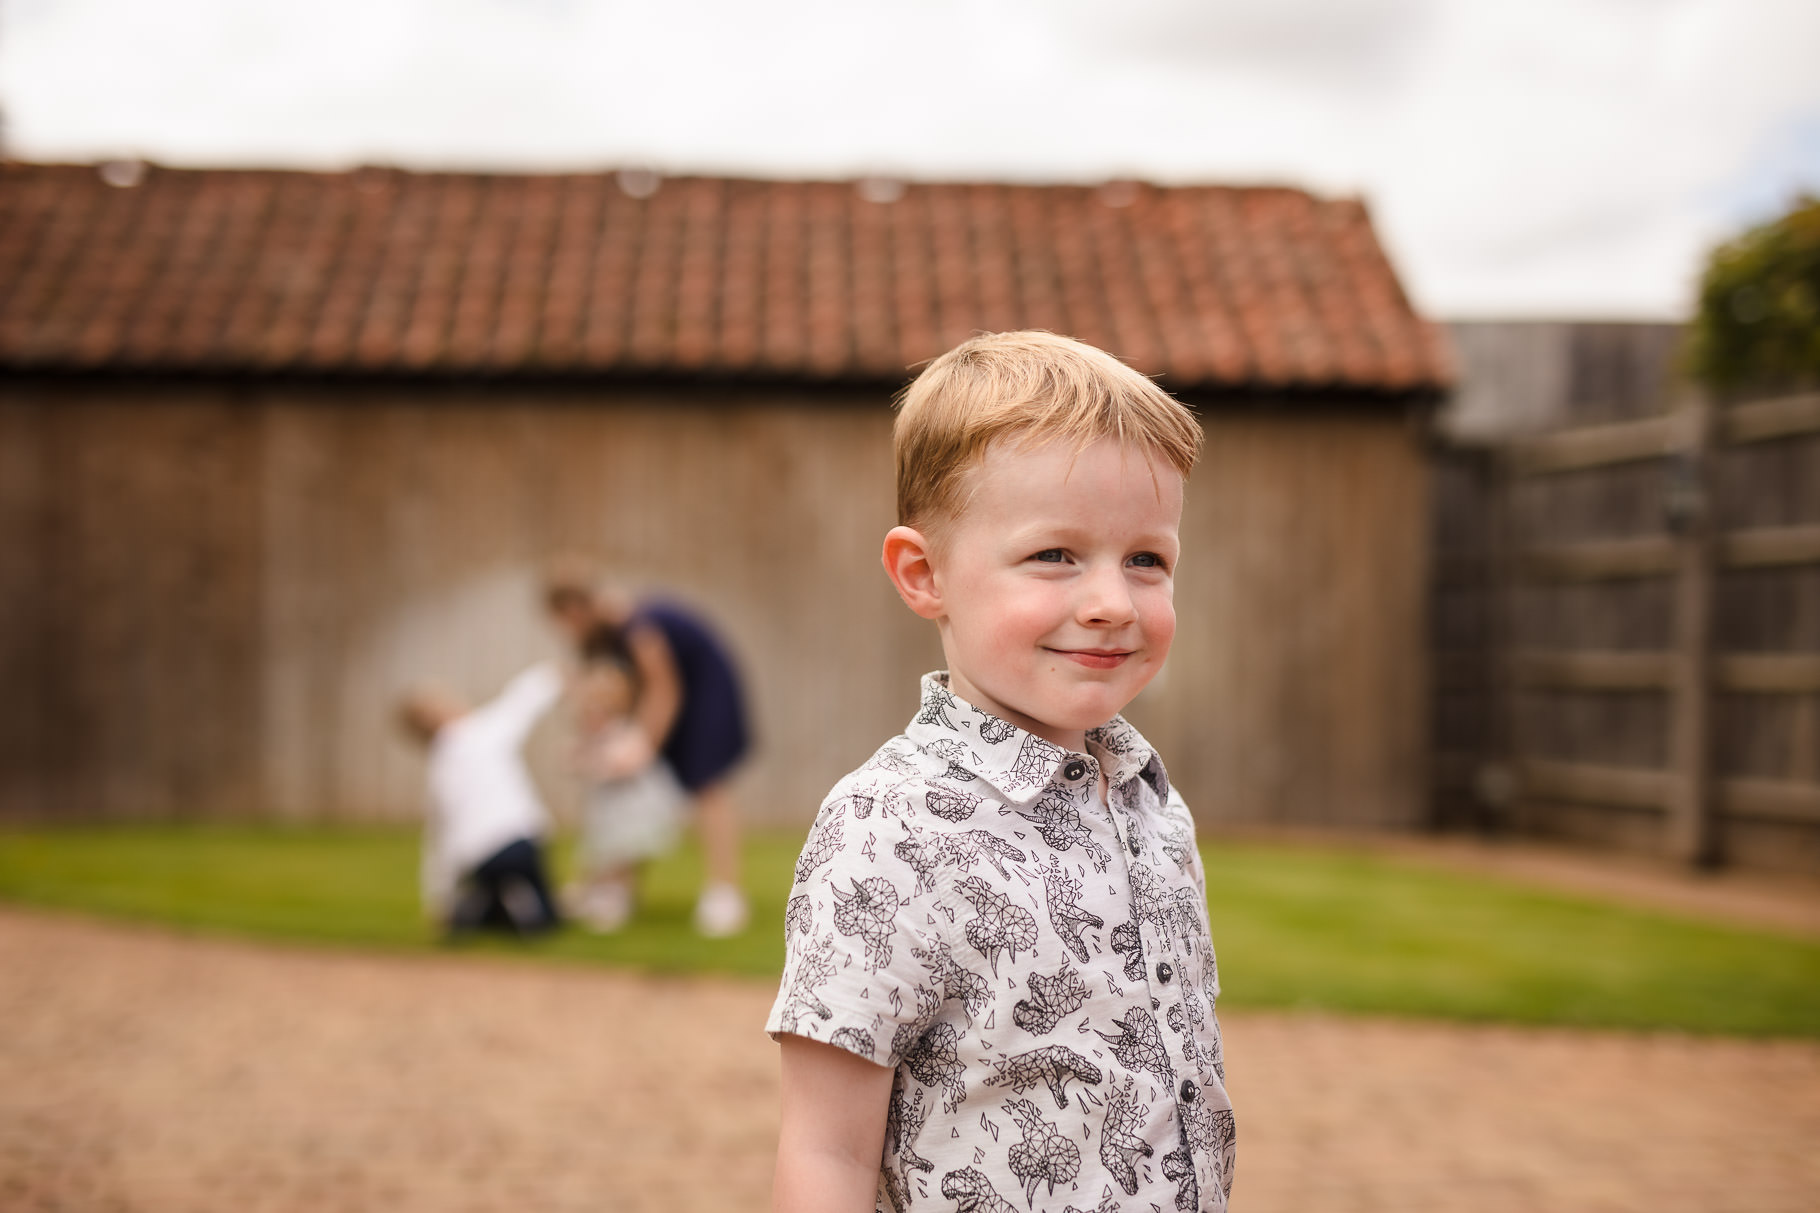 Boy smiling with children playing in the background